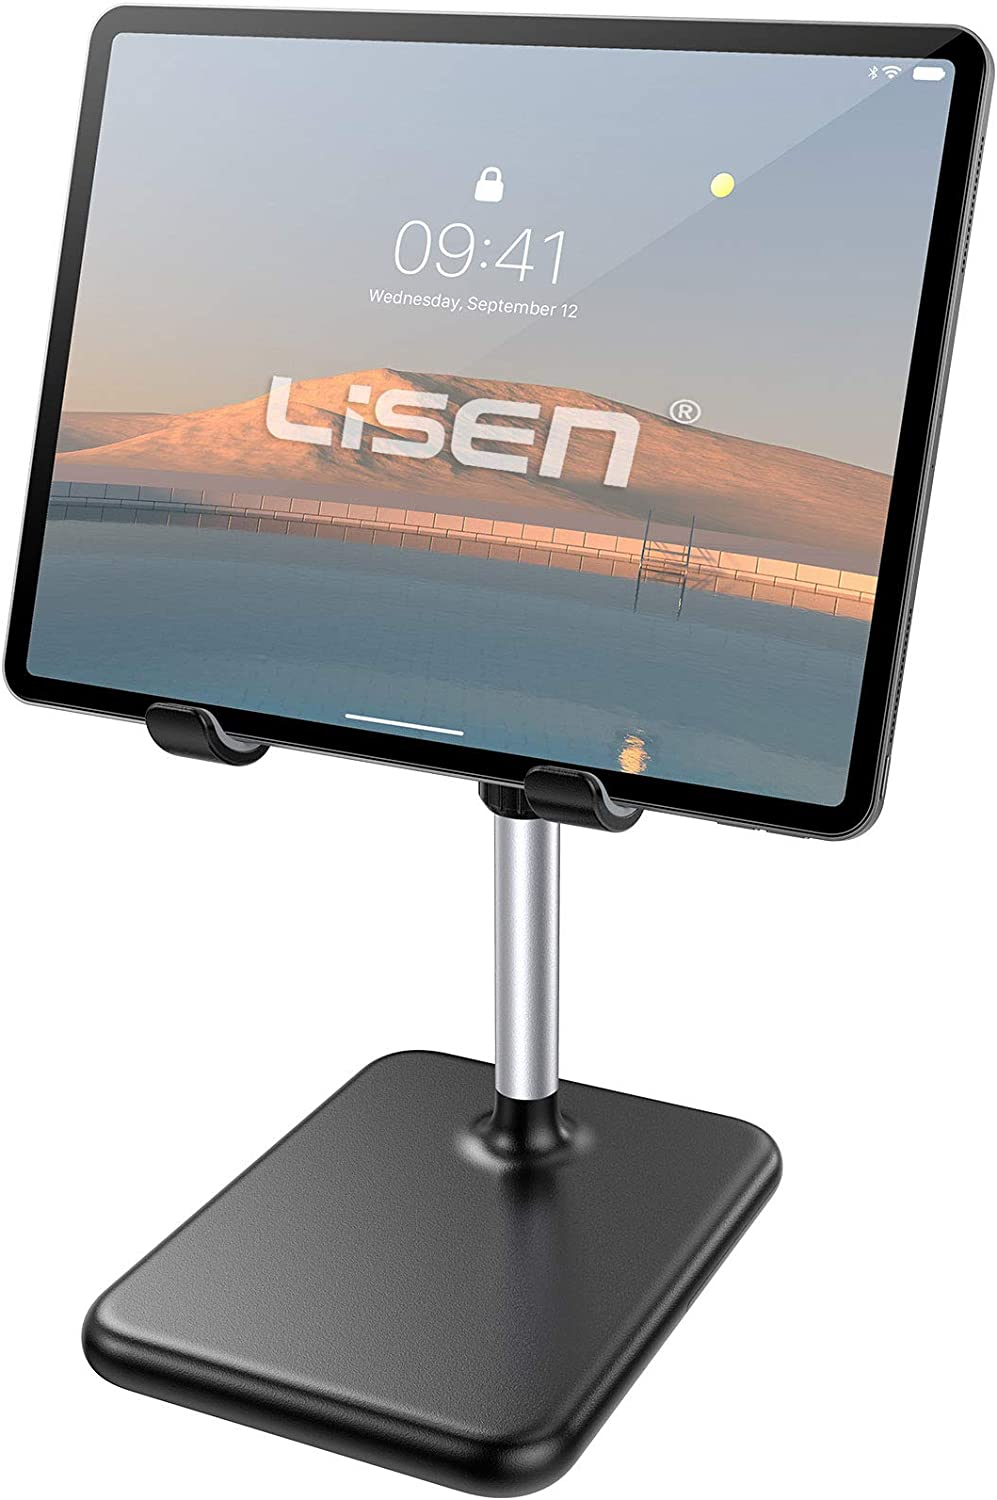 Tablet Stand Holder for Desk, Upgraded Enlarged Lisen iPad Holder Ultra Stable, Height Angle Adjustable Tablet Holder iPad Stand Compatible with All Tablets, iPad, Cell Phones(4-12in)